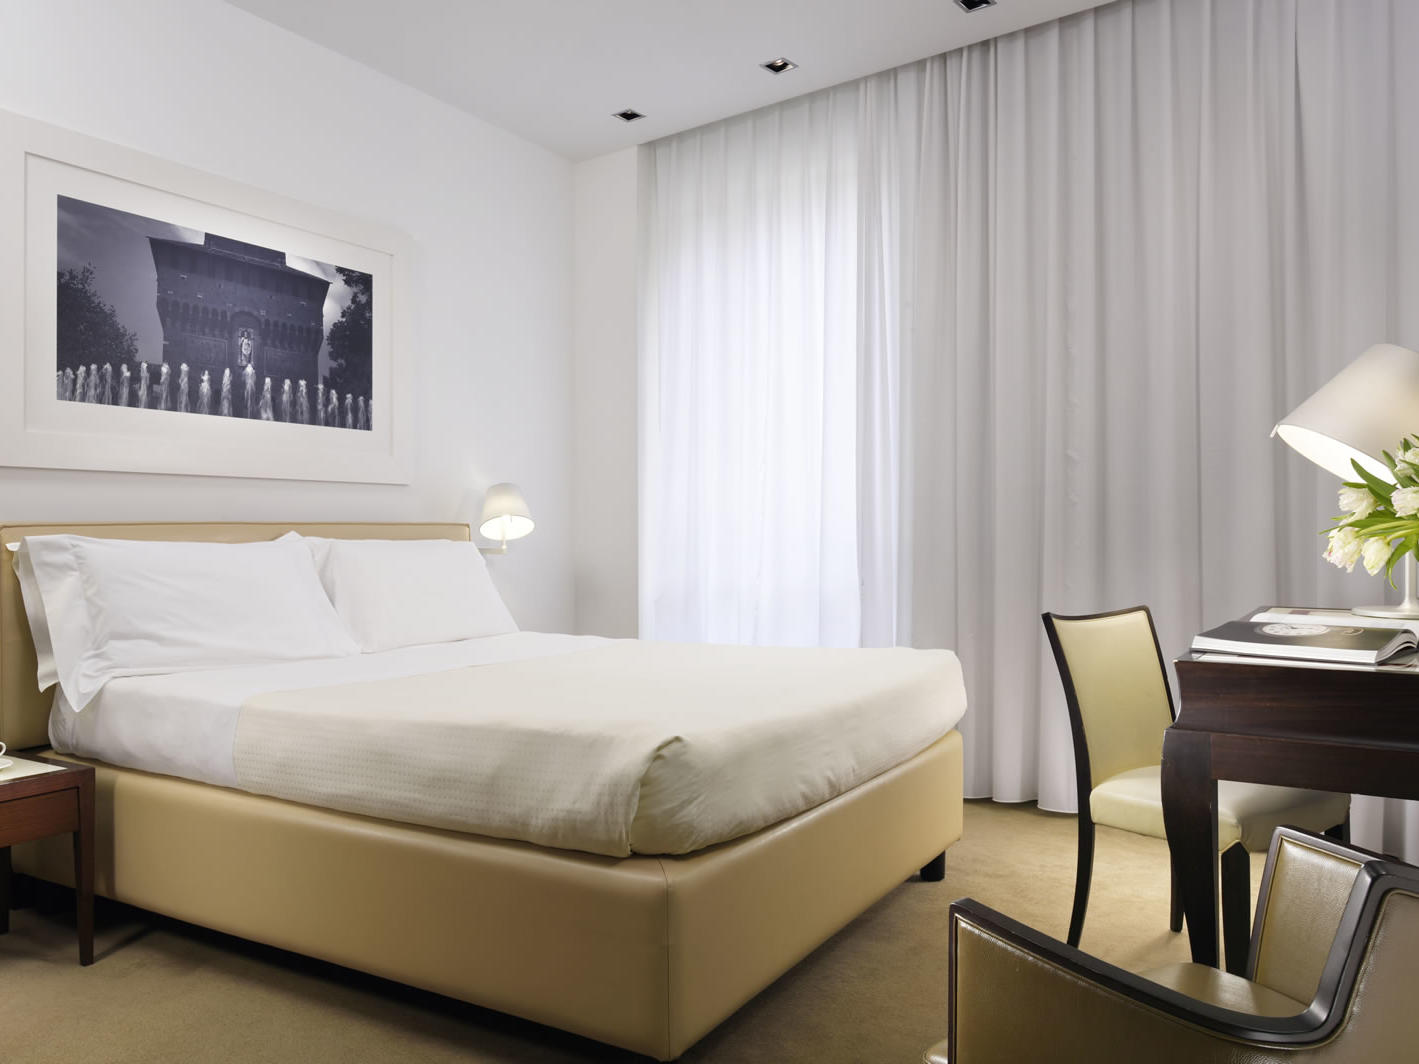 Superior room | UNAHOTELS Cusani Milano